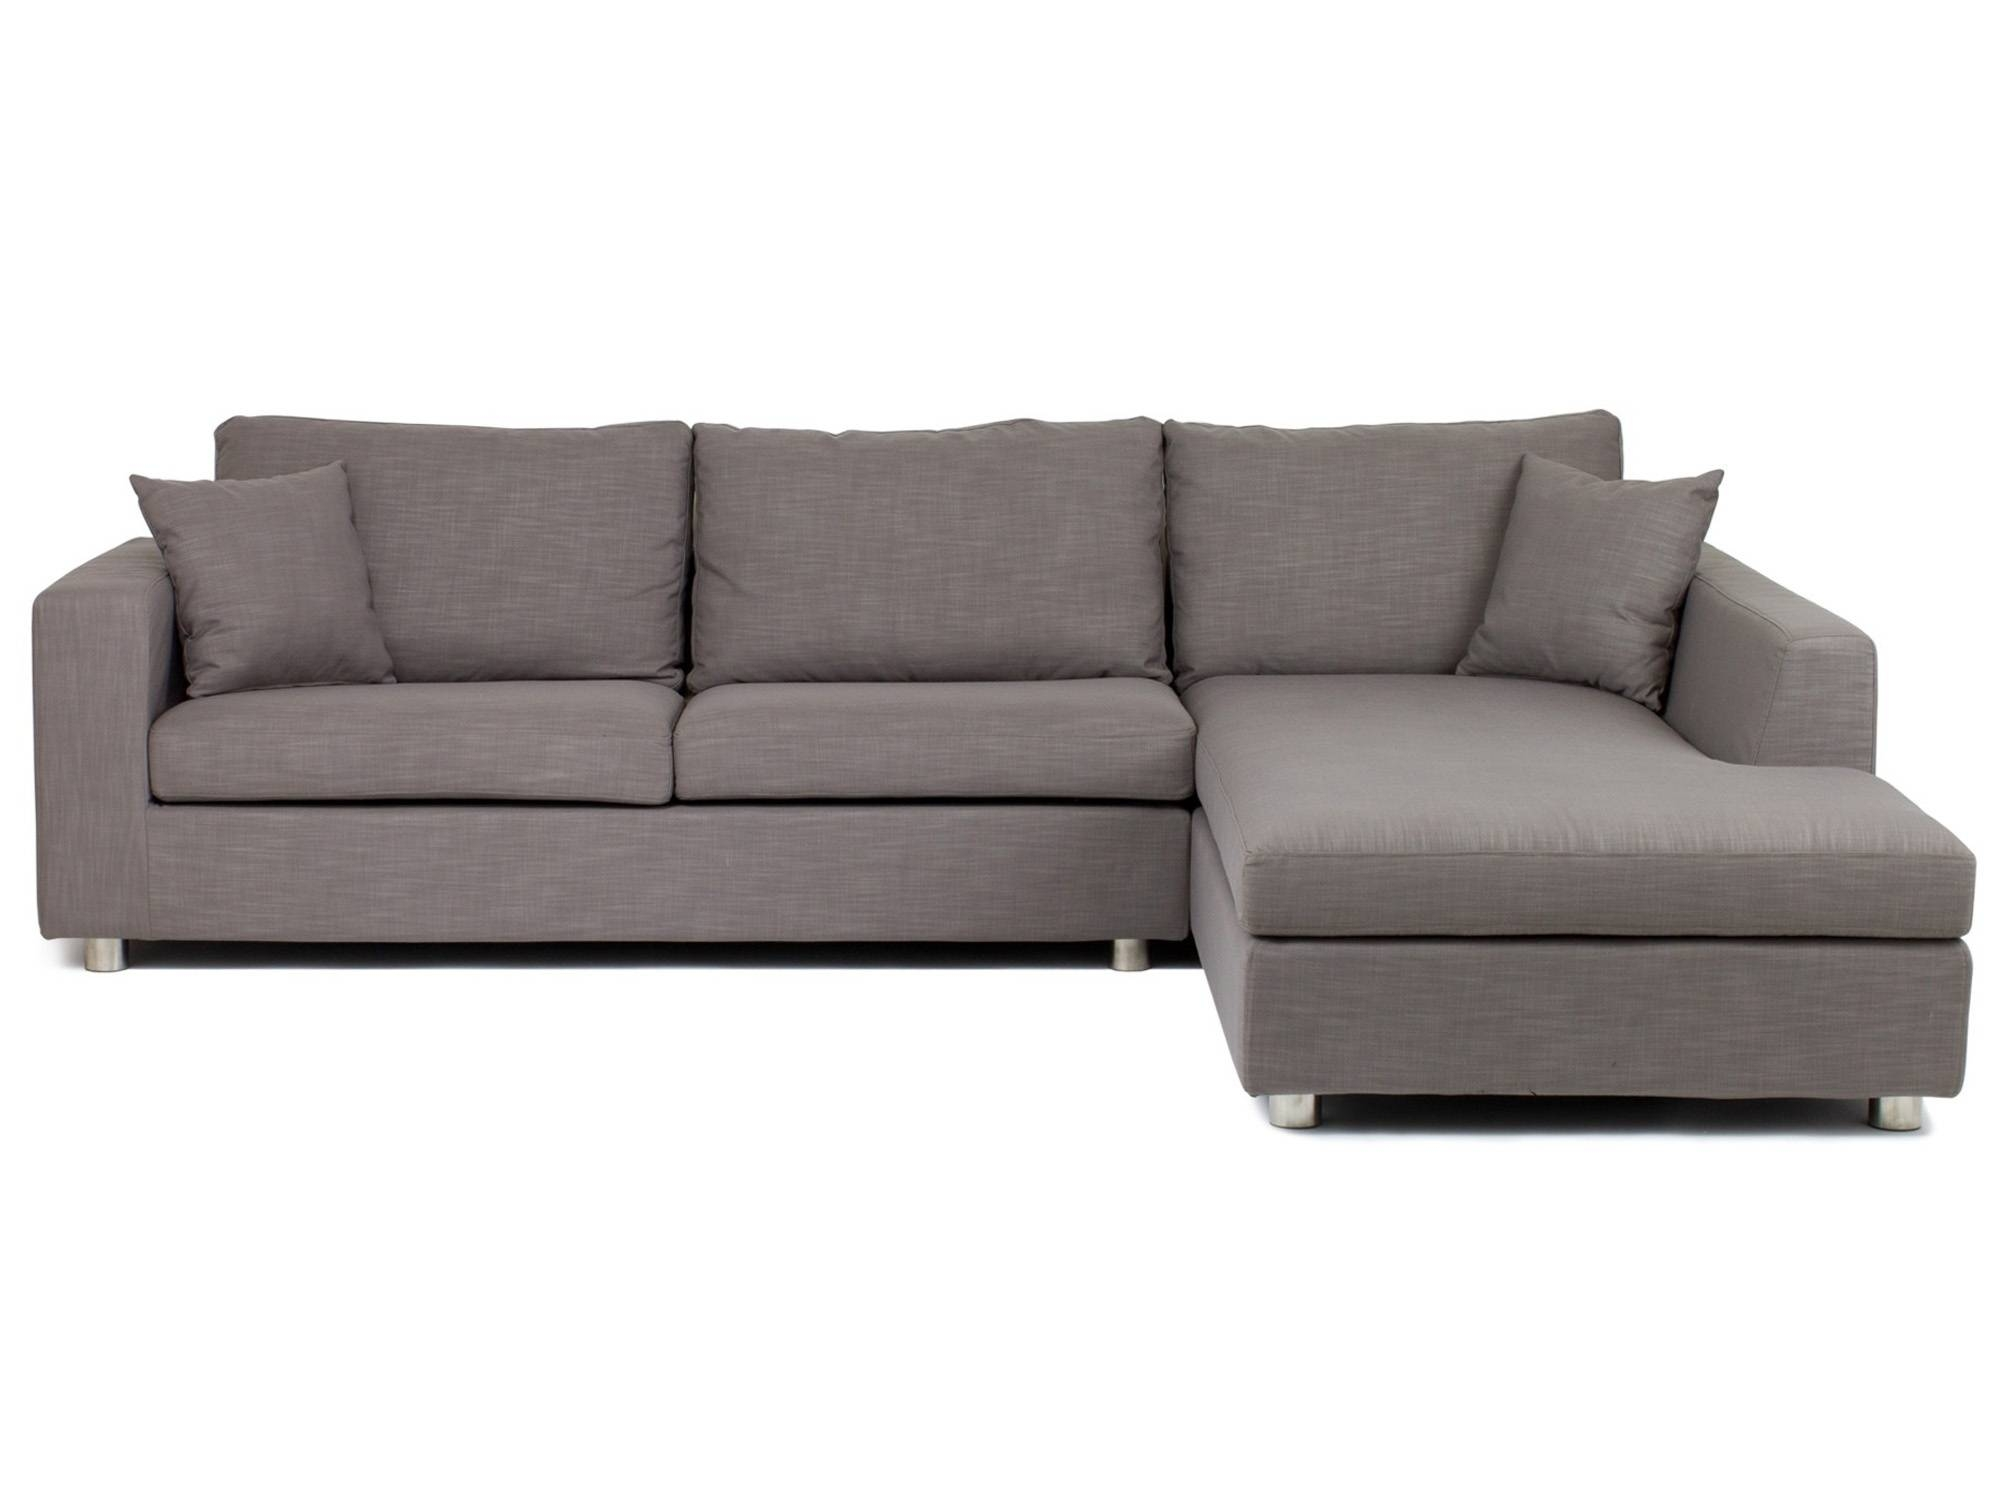 Furniture: Vivacious Chaise Sofa Bed With Softly Bed Foam For with regard to Sofa Beds With Storage Chaise (Image 4 of 15)